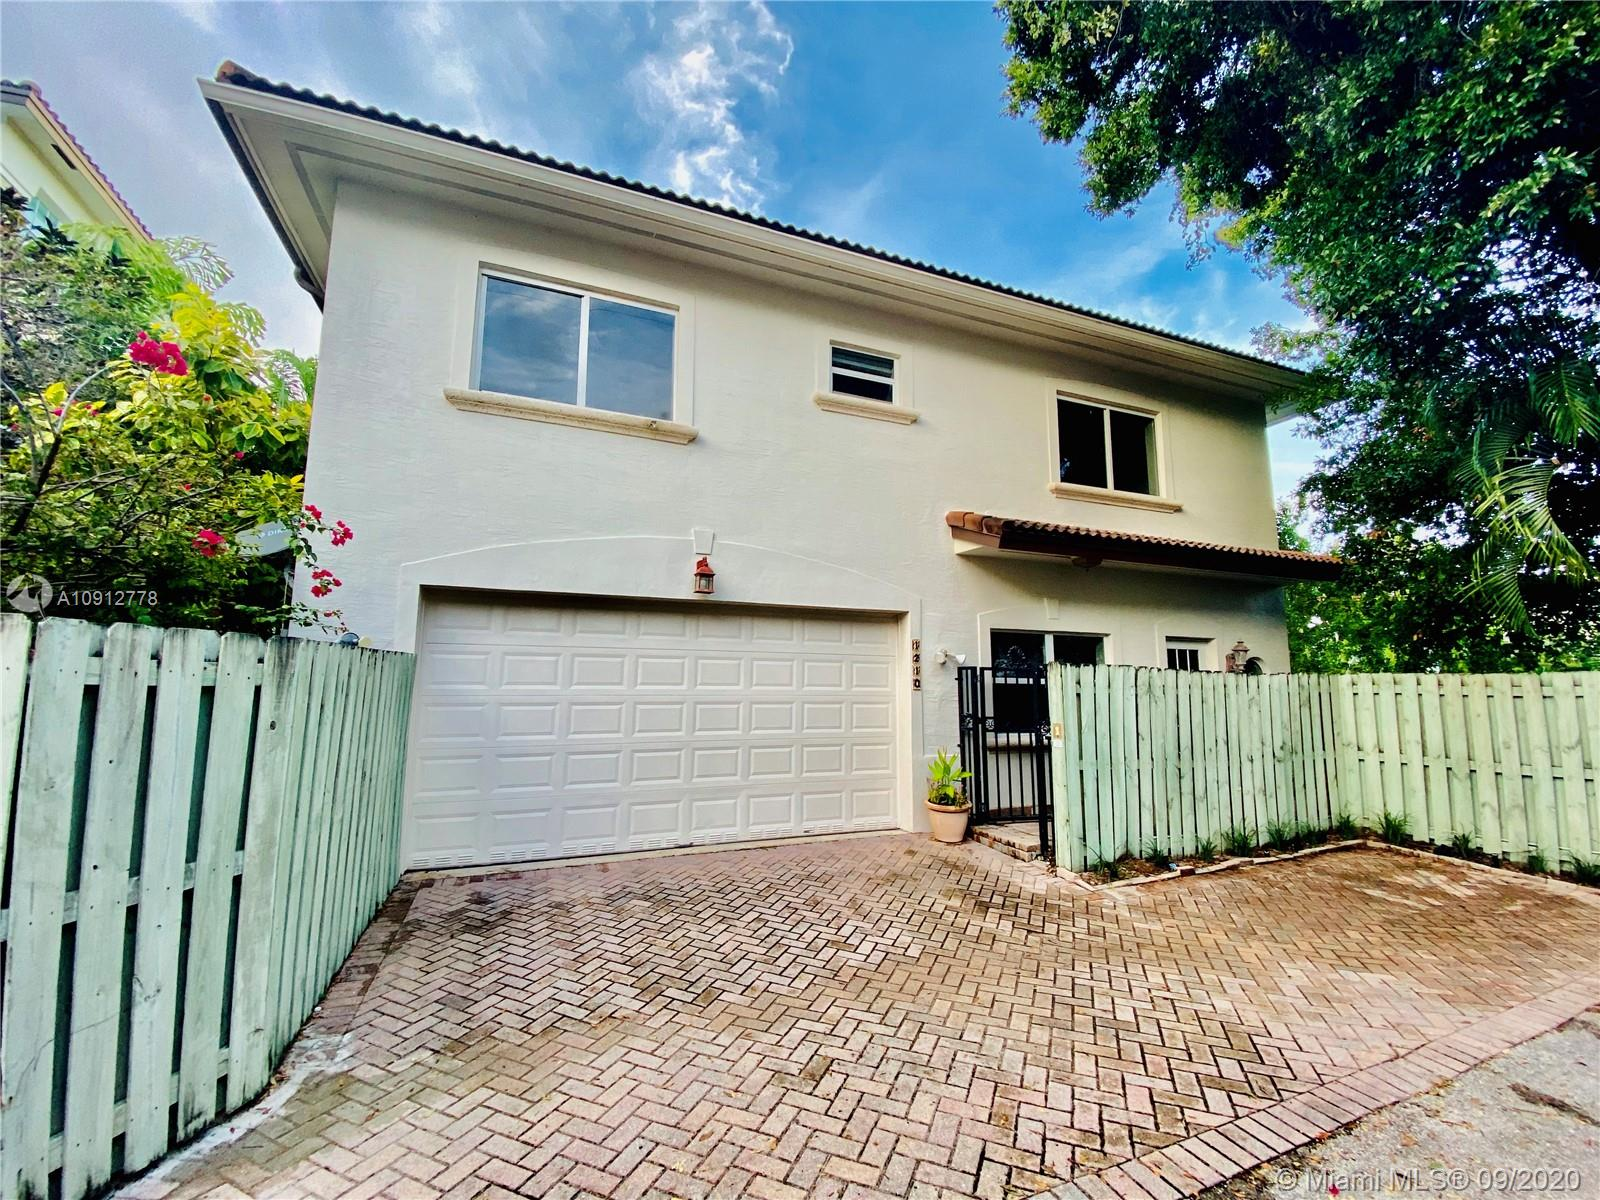 Spacious attached single family home in the highly sought after Victoria Park neighborhood. Featuring an open kitchen with Island and brand new stainless steel appliances, freshly painted interior and exterior, hurricane impact windows and doors throughout. Large family room leads out to a fenced in backyard with pool great for entertaining. Upstairs Master bedroom features ensuite bathroom with dual sinks and private balcony with views of downtown Fort lauderdale.  Live just minutes from Downtown Las Olas, ten minutes from the beach, and approximately 20 minutes from the Fort Lauderdale International Airport. No HOA!